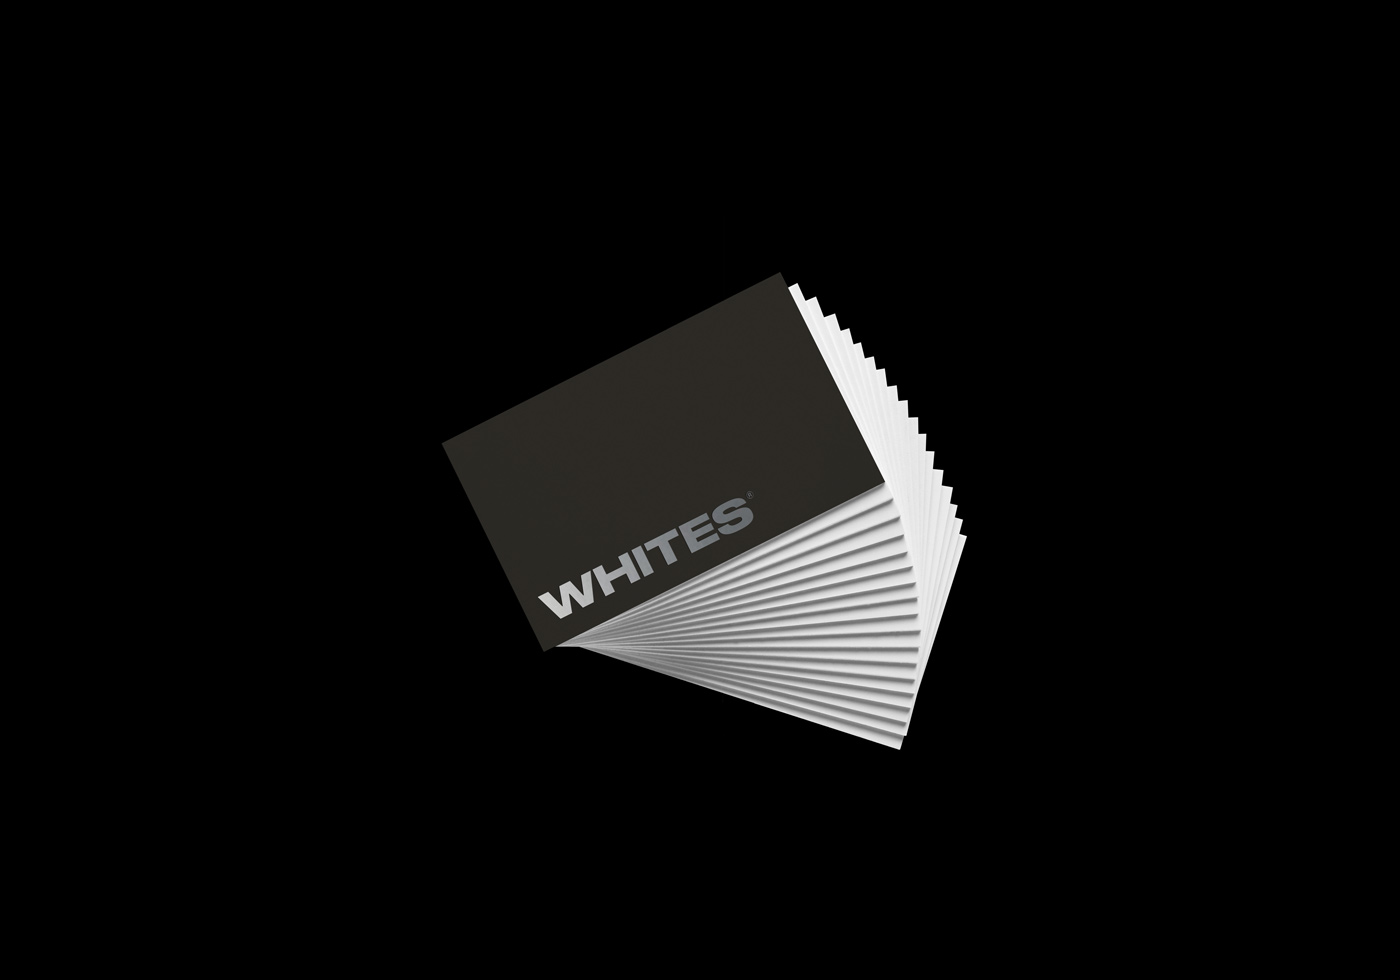 Whites-businesscards.jpg